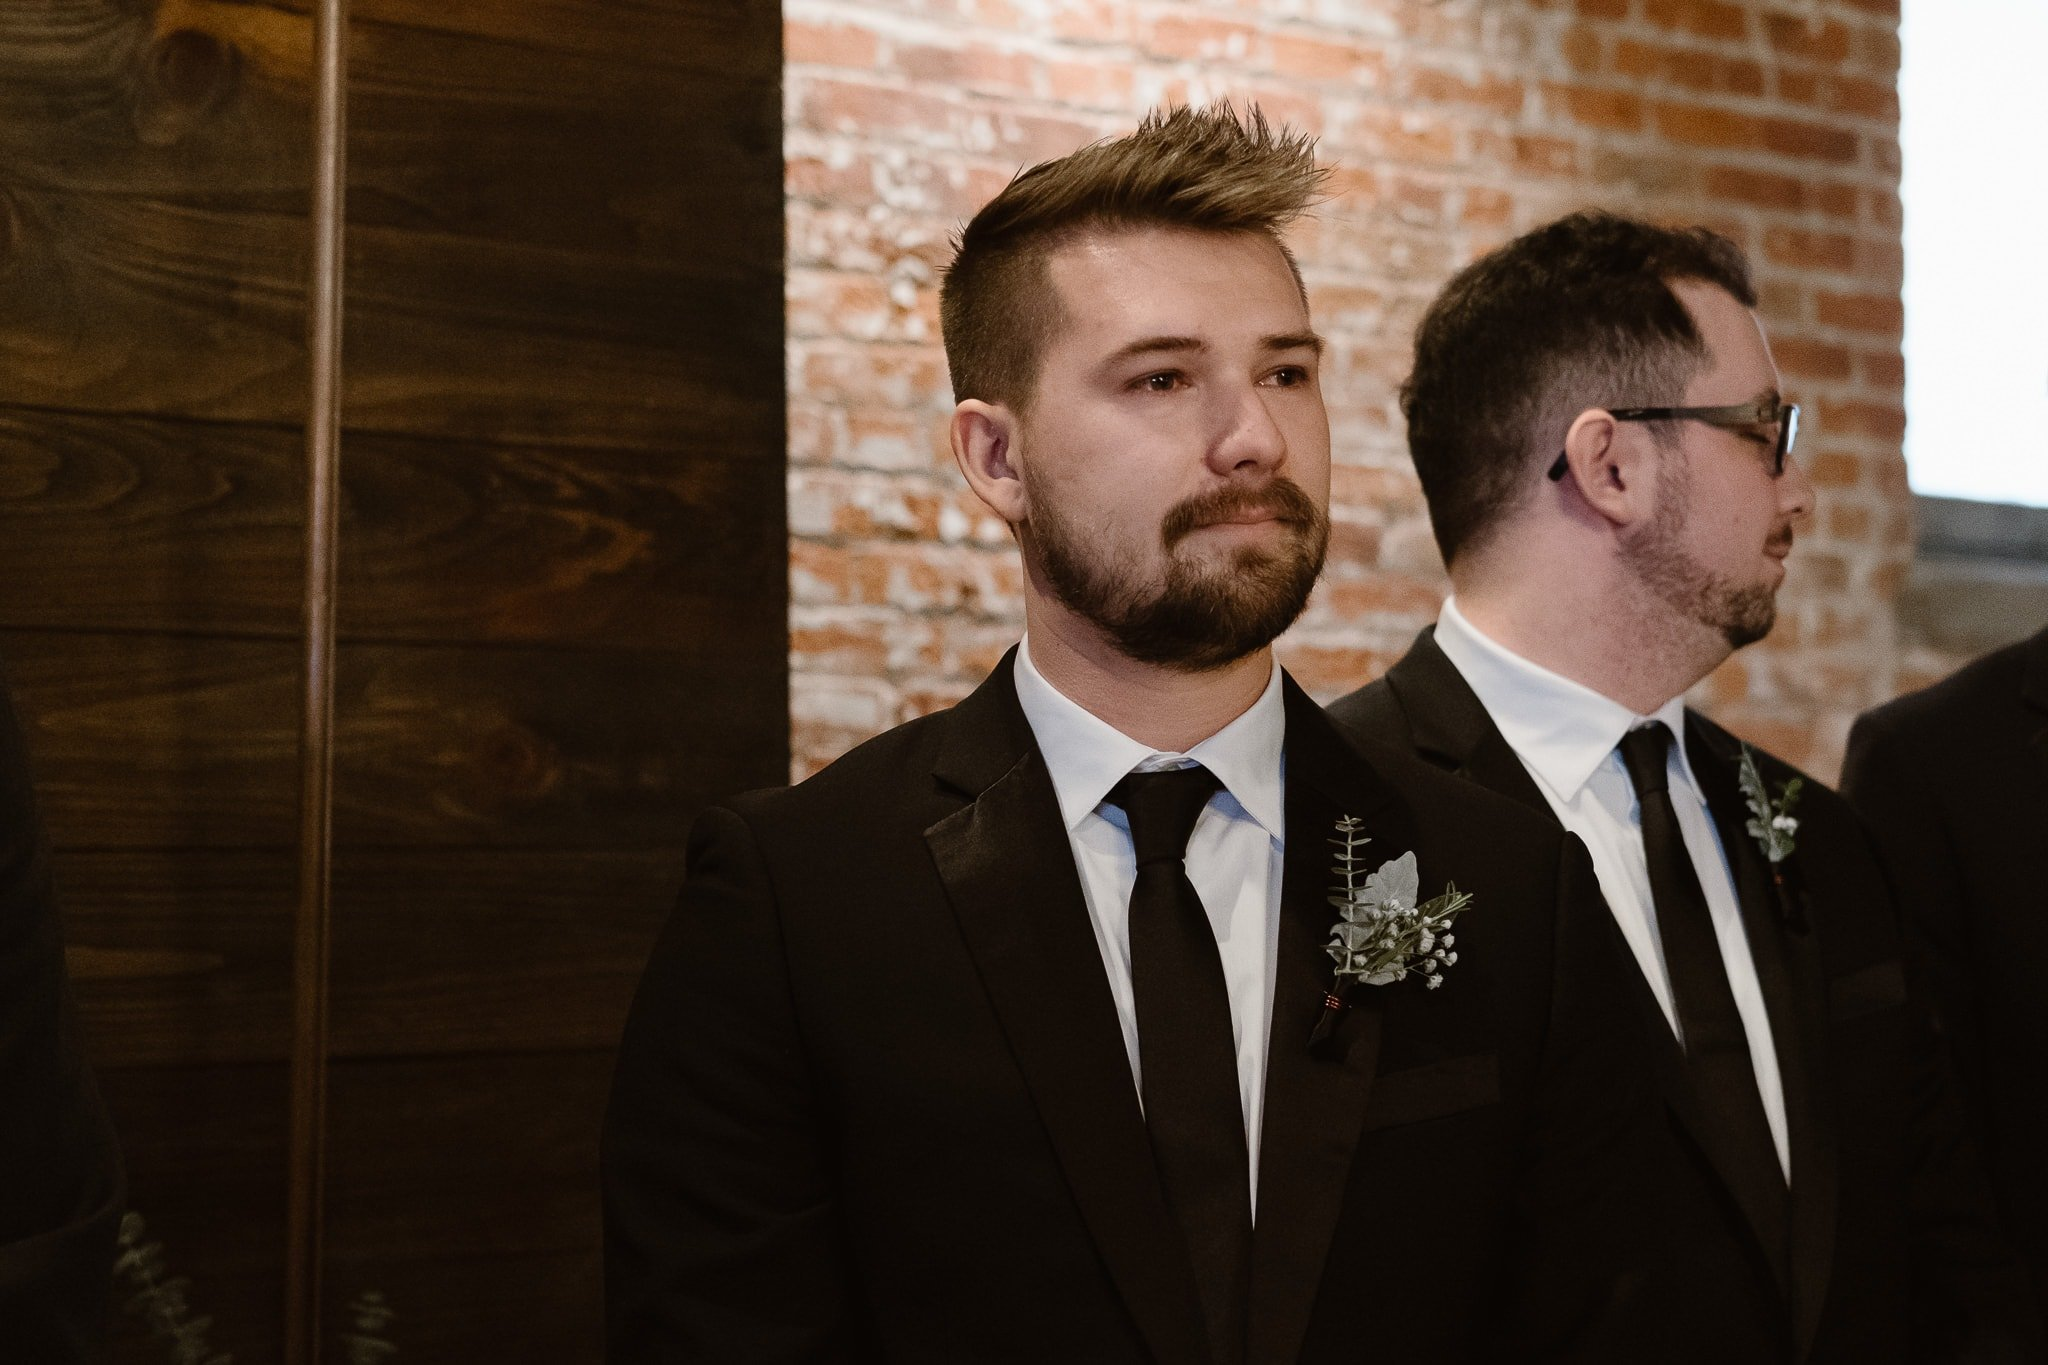 St Vrain Wedding Photographer | Longmont Wedding Photographer | Colorado Winter Wedding Photographer, Colorado industrial chic wedding ceremony, groom watching bride walk down aisle